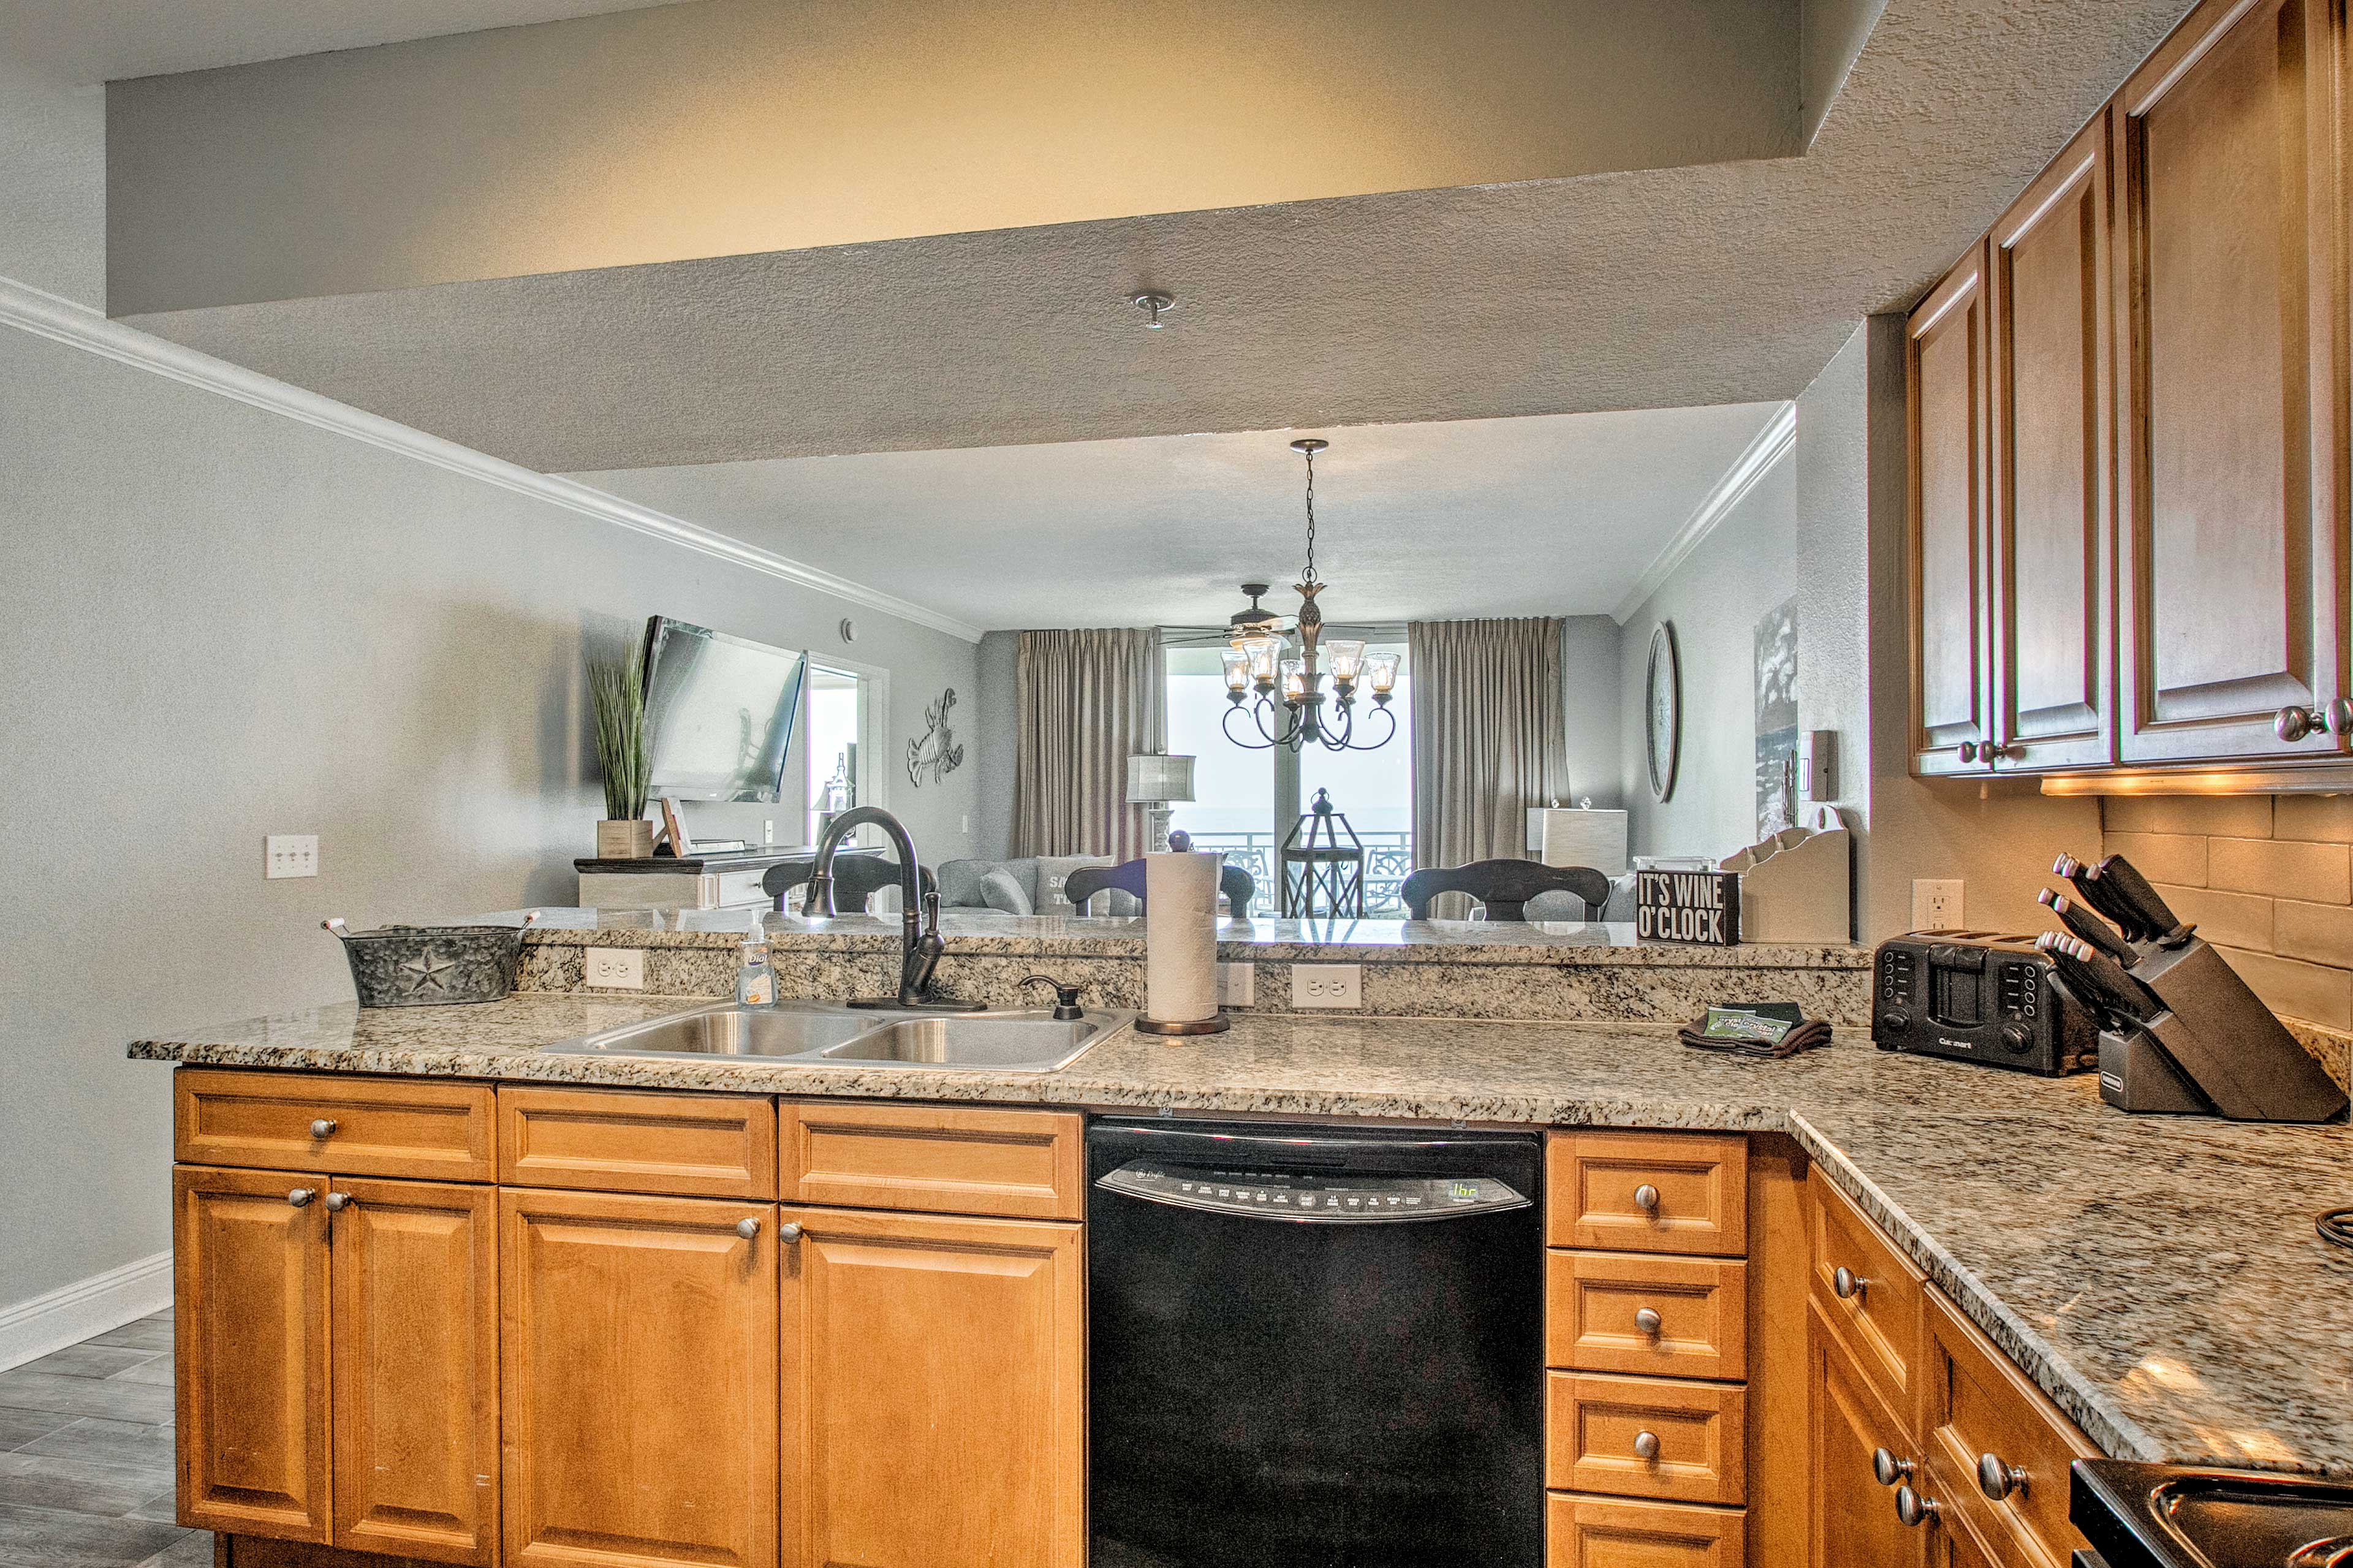 Admire the granite counters and all updated appliances.